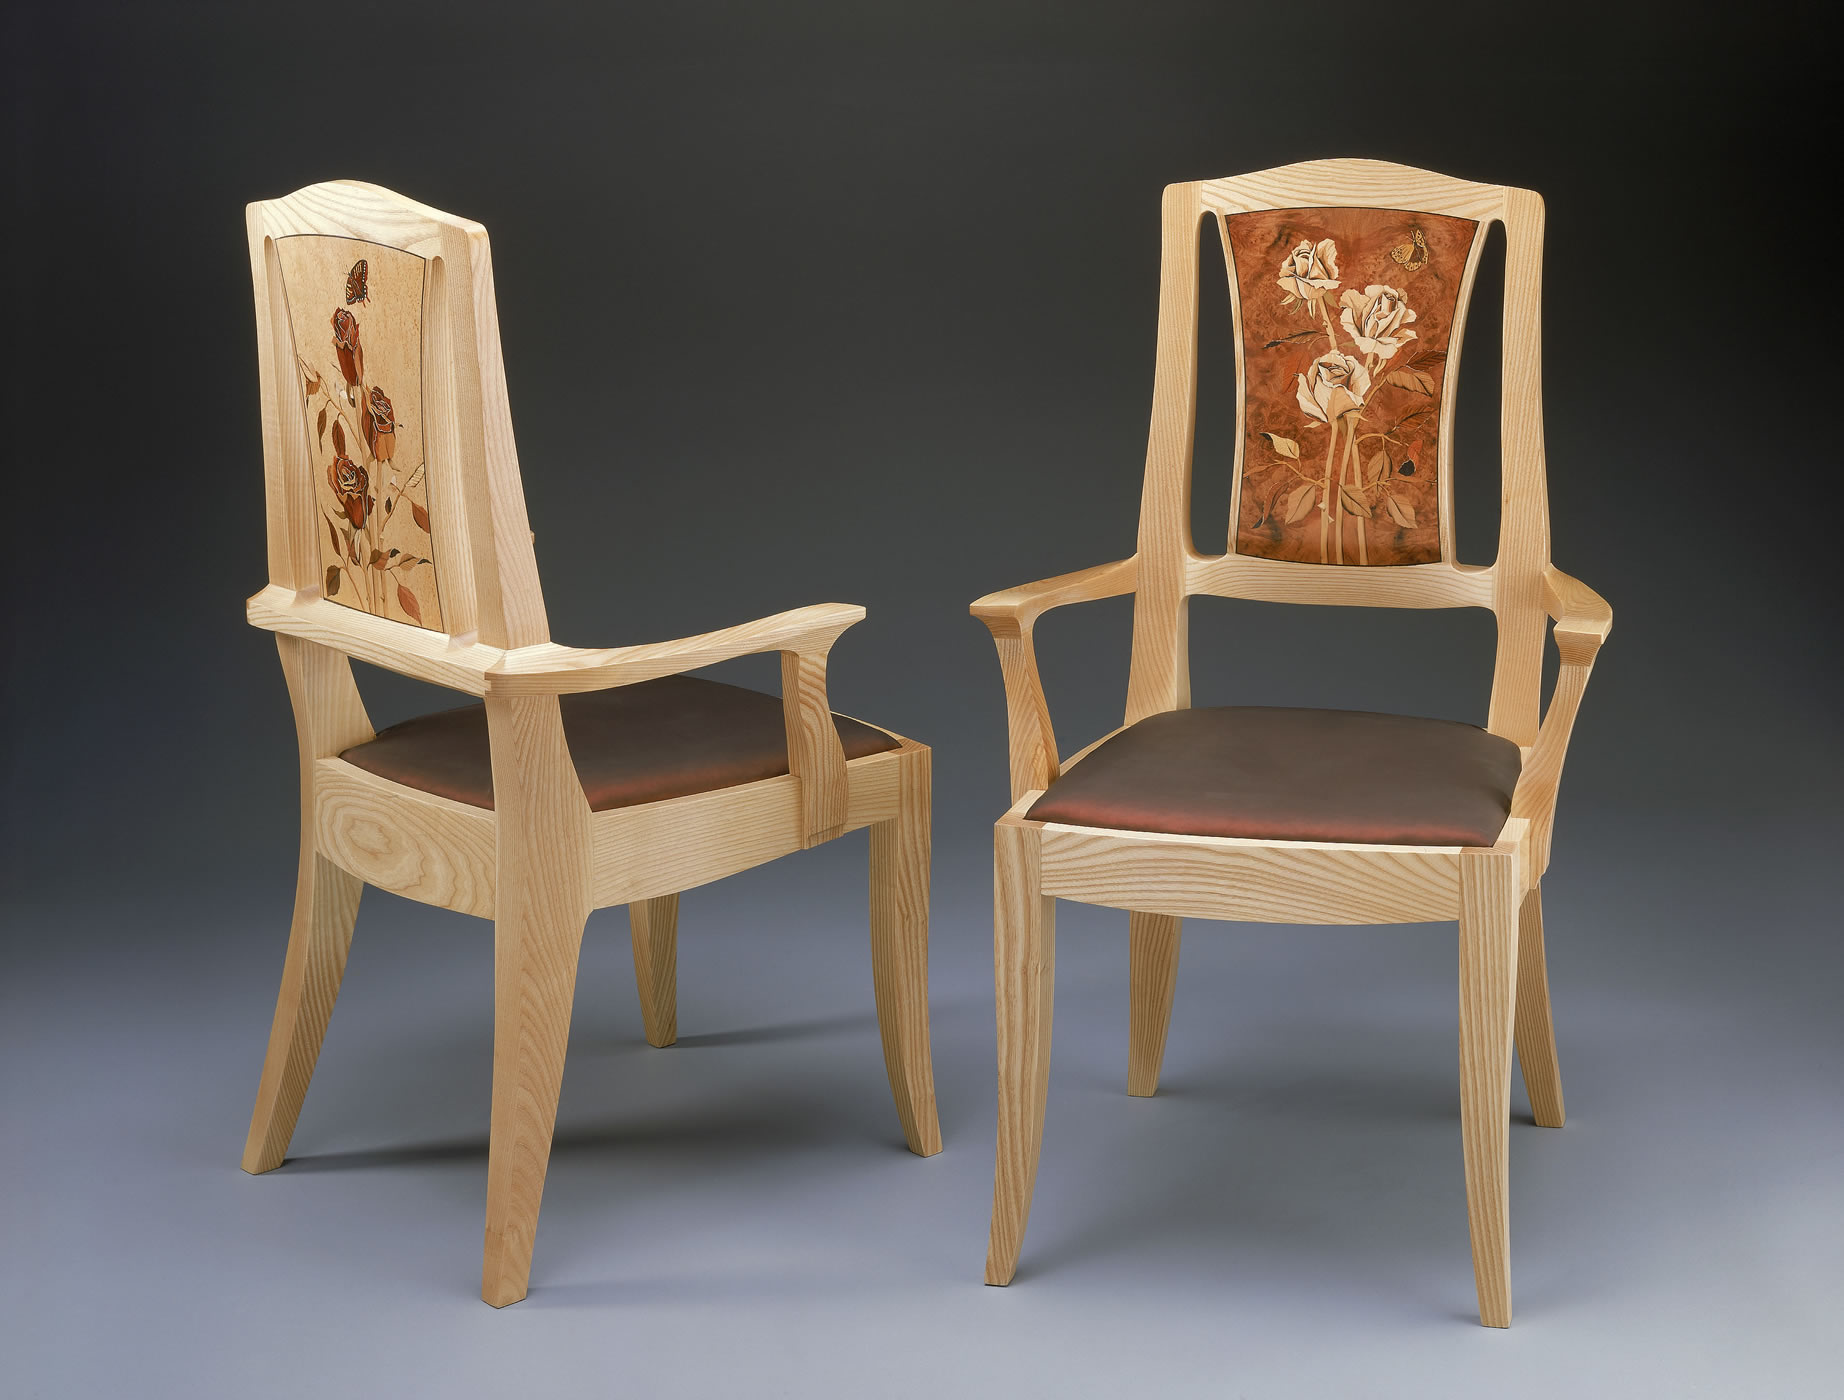 Dicovering the Ancient Art of Marquetry craftsmanship chairs ancient art of marquetry Discovering the Ancient Art of Marquetry Dicovering the Ancient Art of Marquetry craftsmanship chairs